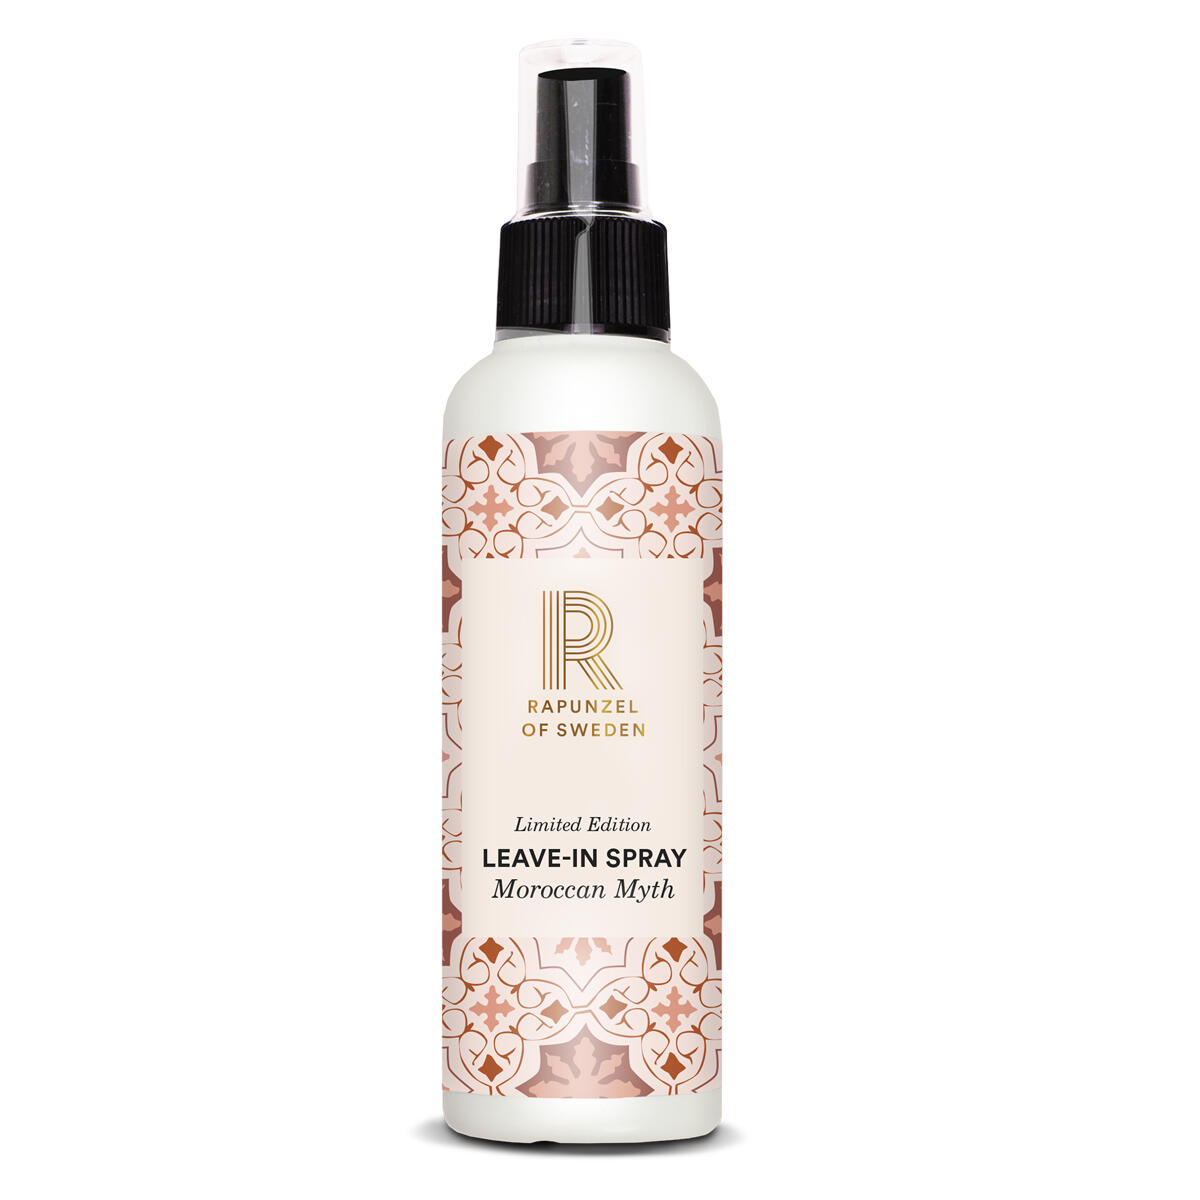 Leave-in spray Moroccan Myth null